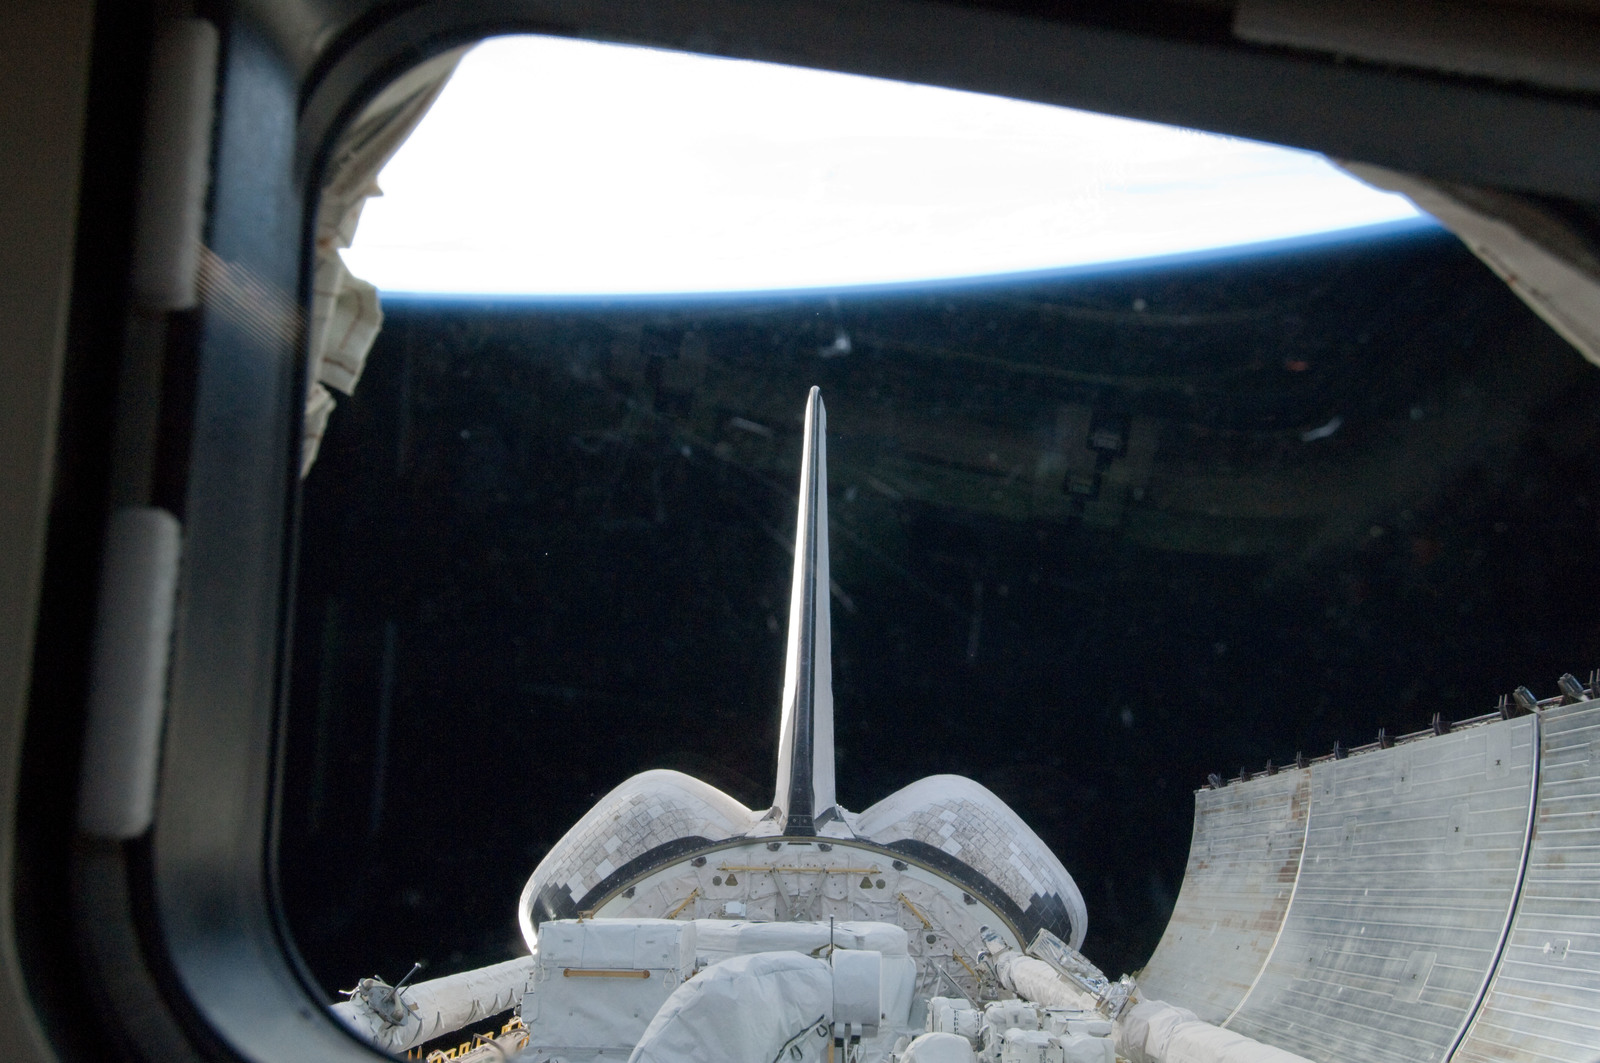 S134E005318 - STS-134 - View of the Shuttle Endeavour Payload Bay, OMS Pods, and Vertical Stabilizer